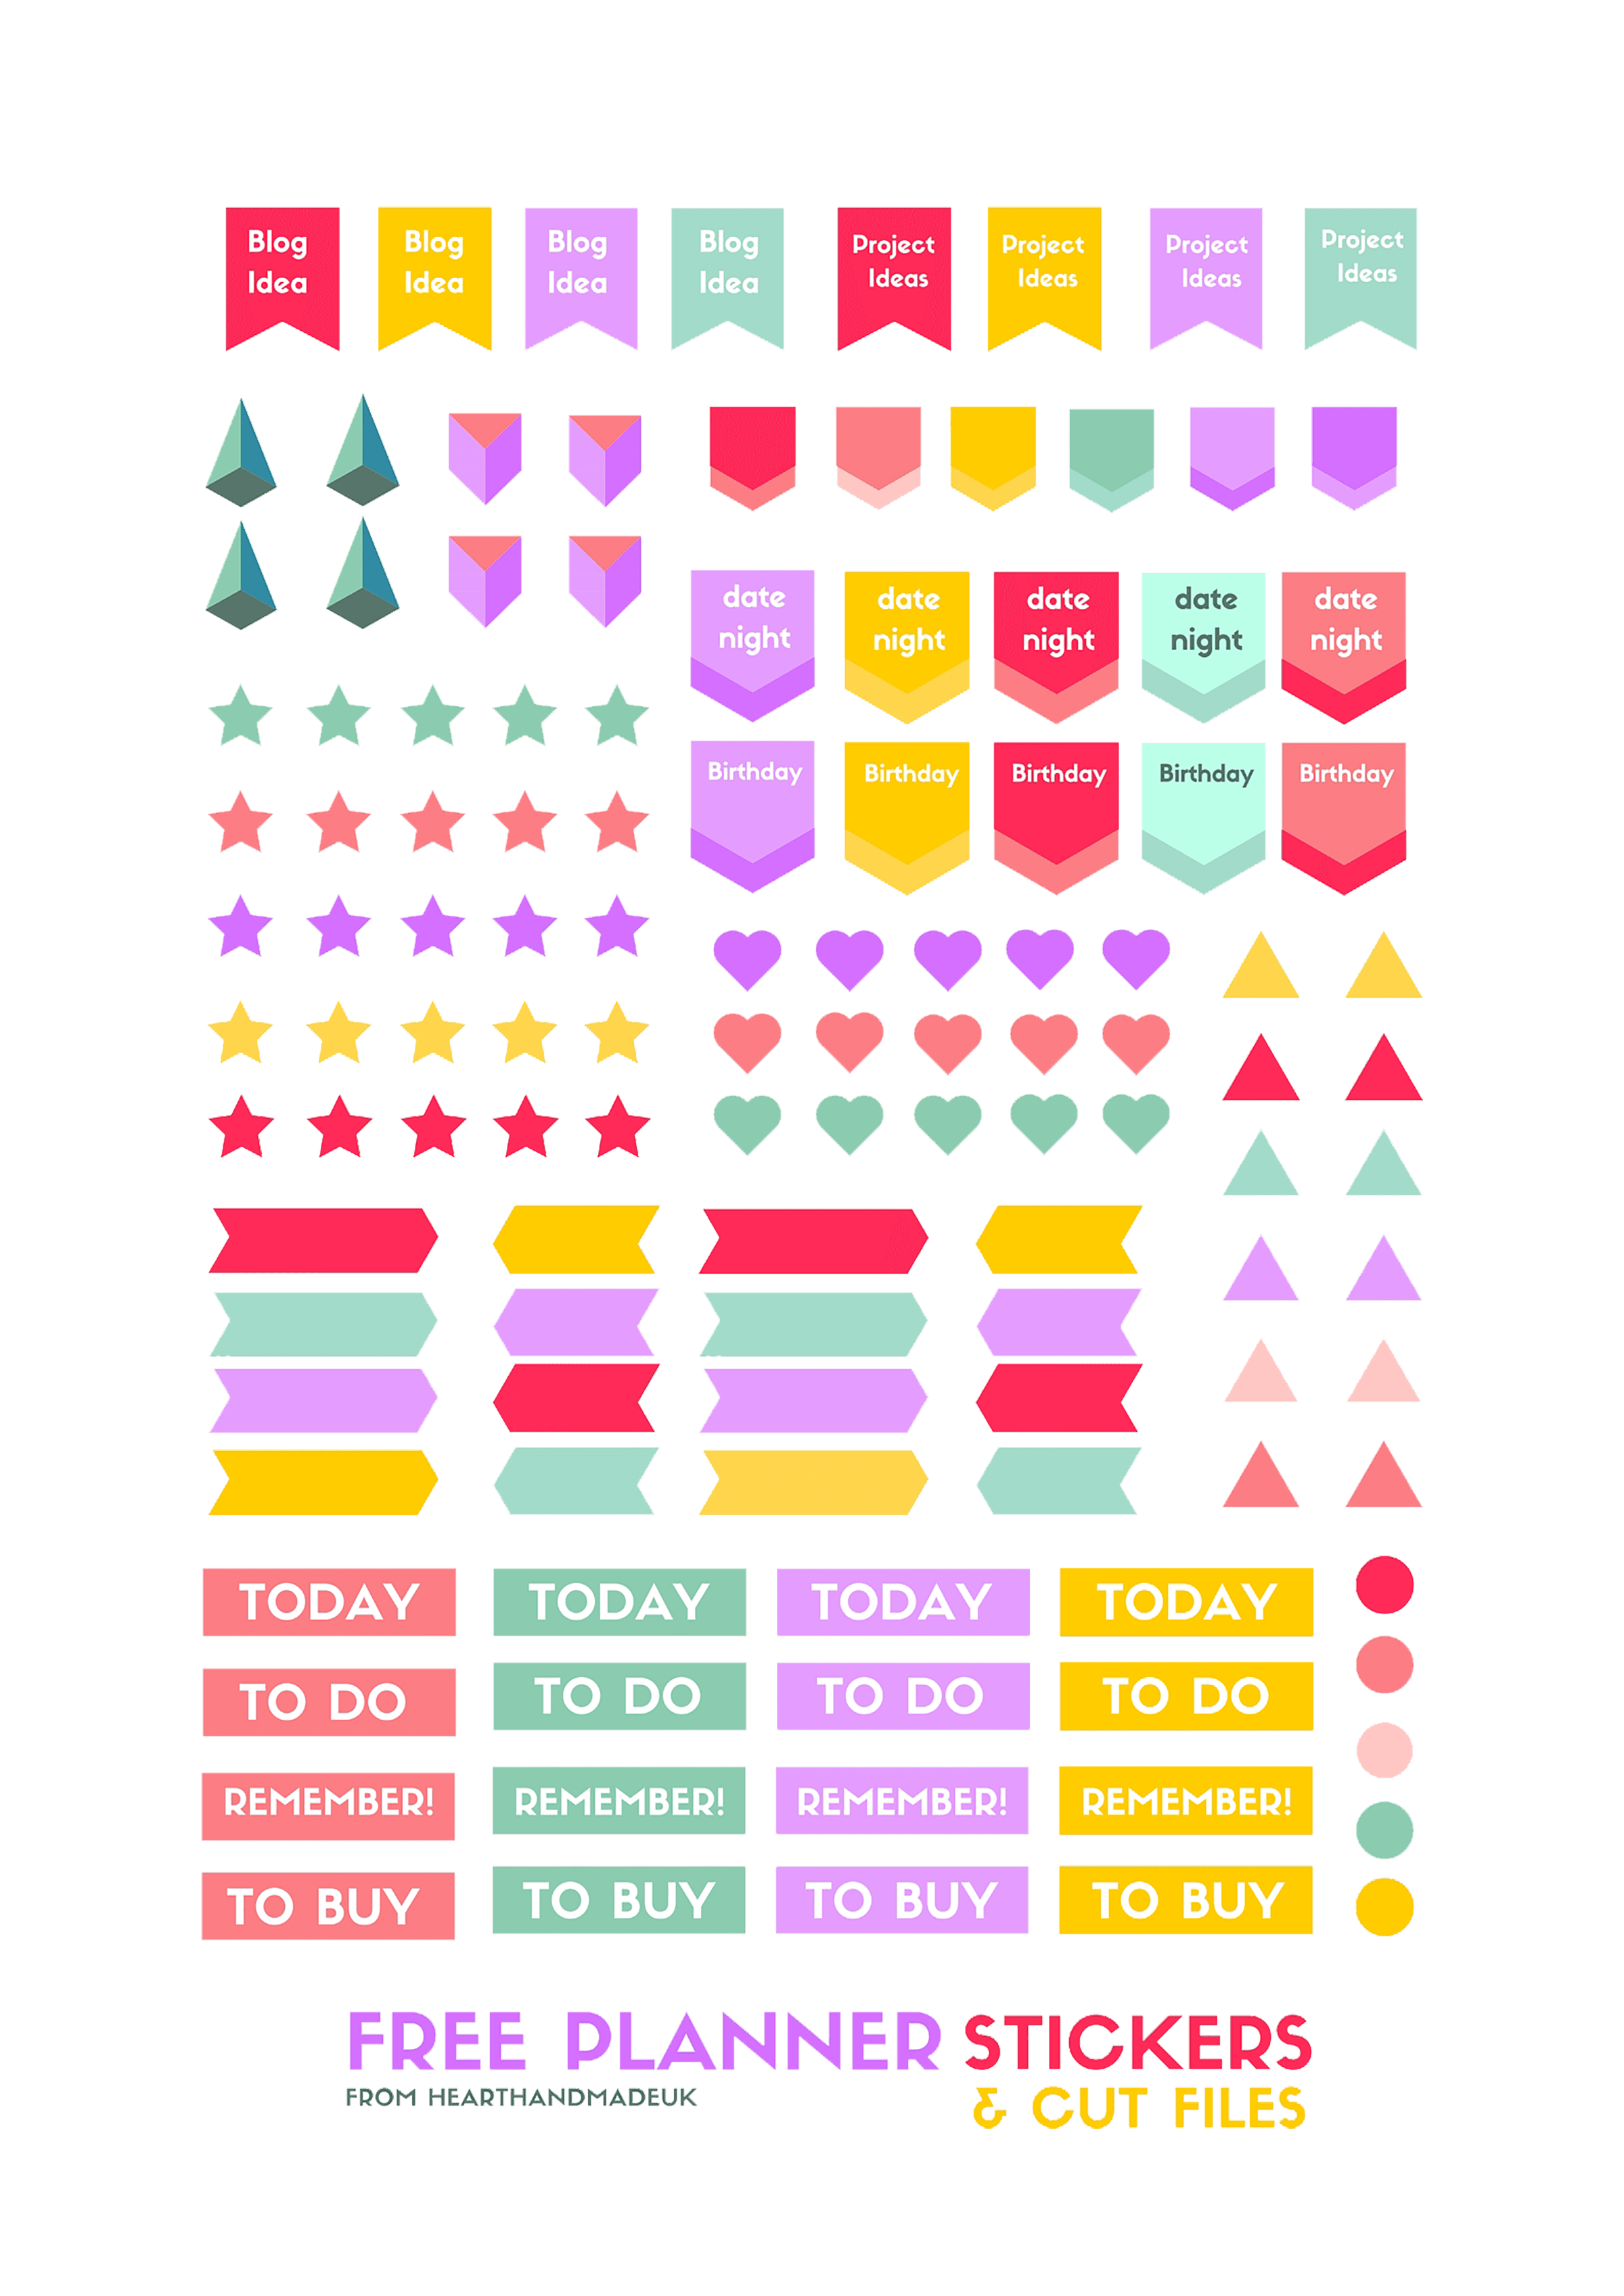 Journal clipart homework planner. Free stickers png pixels